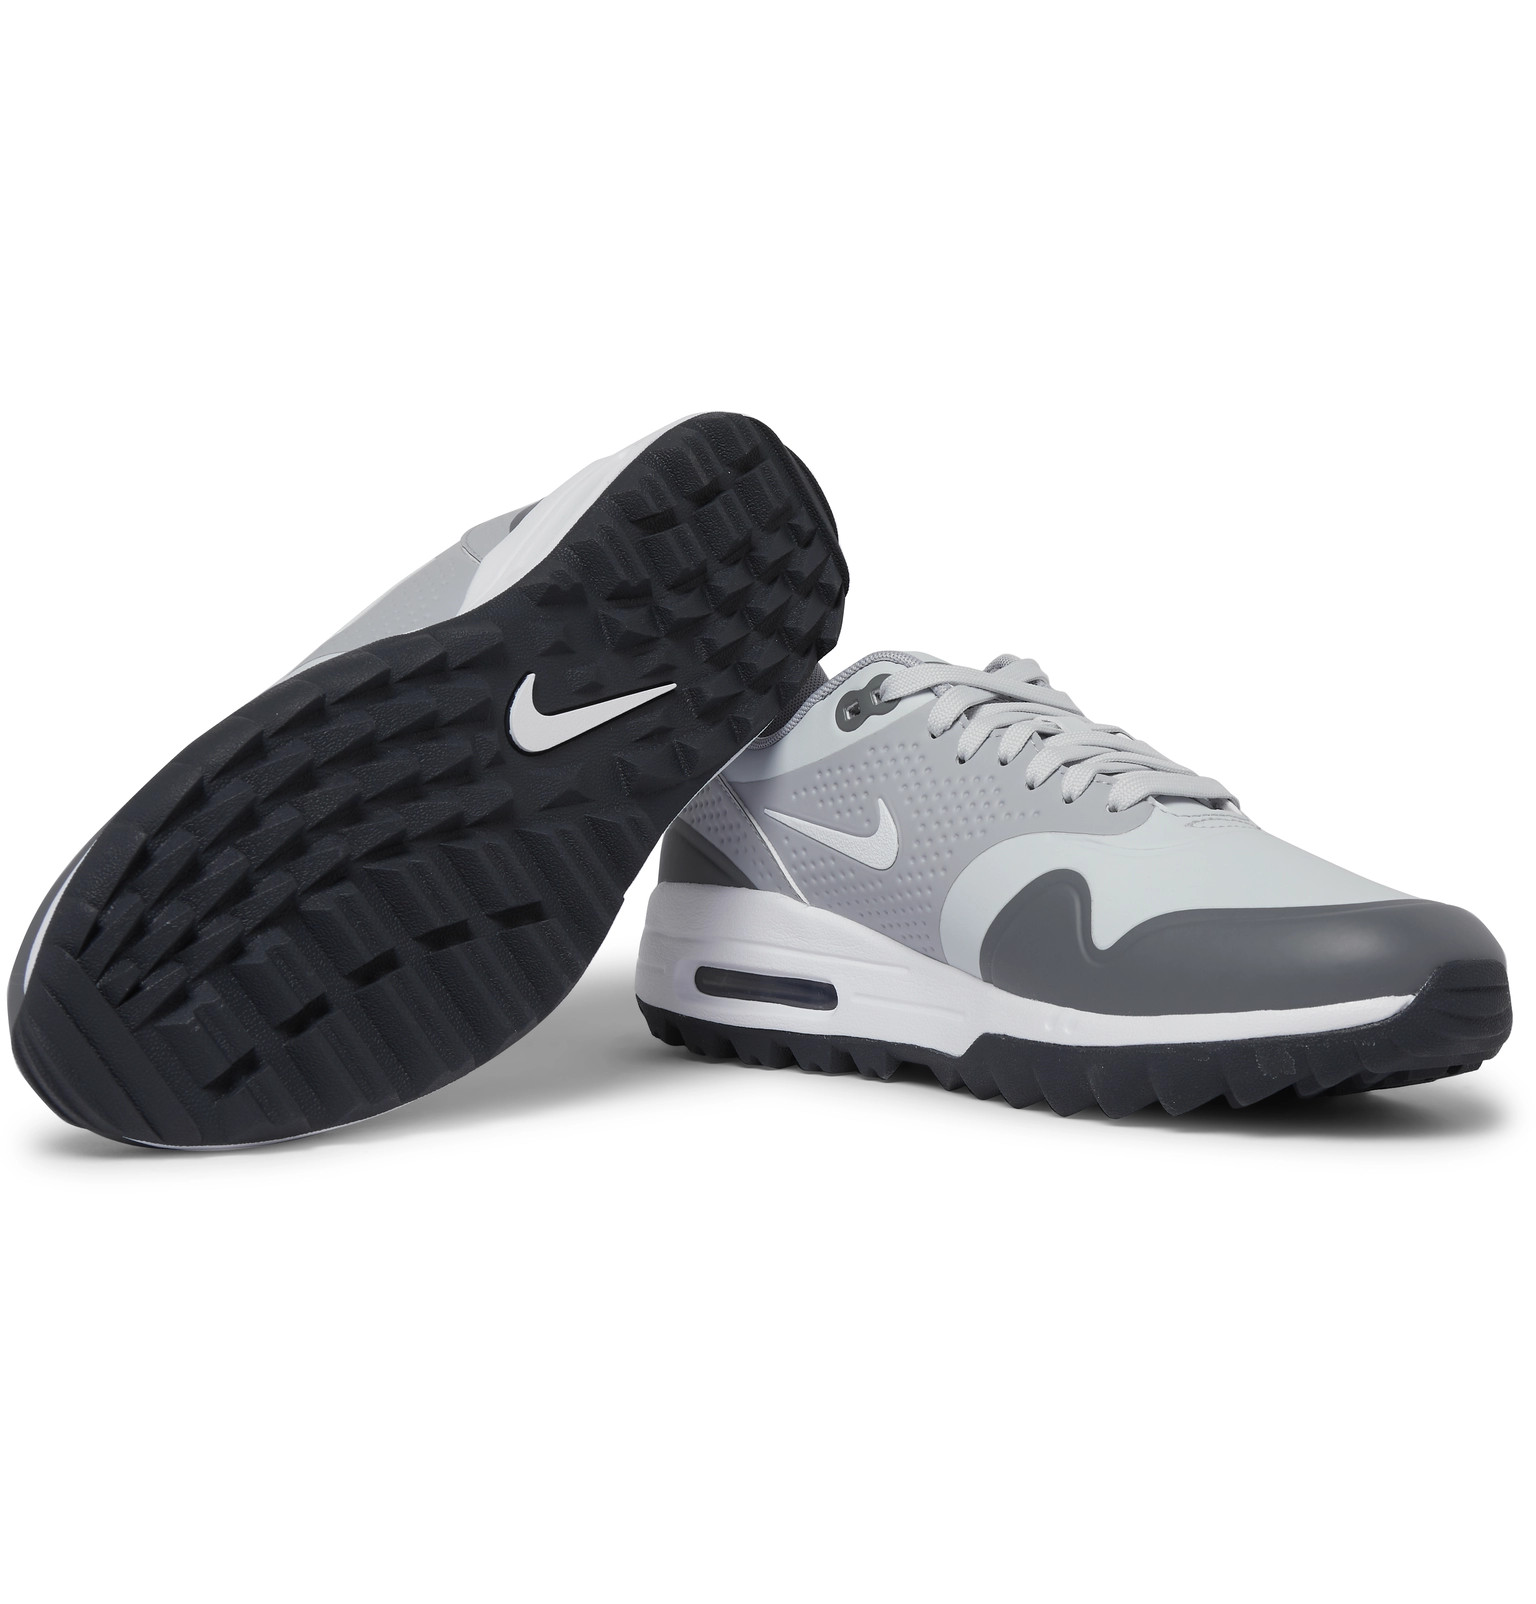 finest selection c2b70 0145e Nike GolfAir Max 1G Coated-Mesh Golf Shoes. £100. Tap to Close. 1